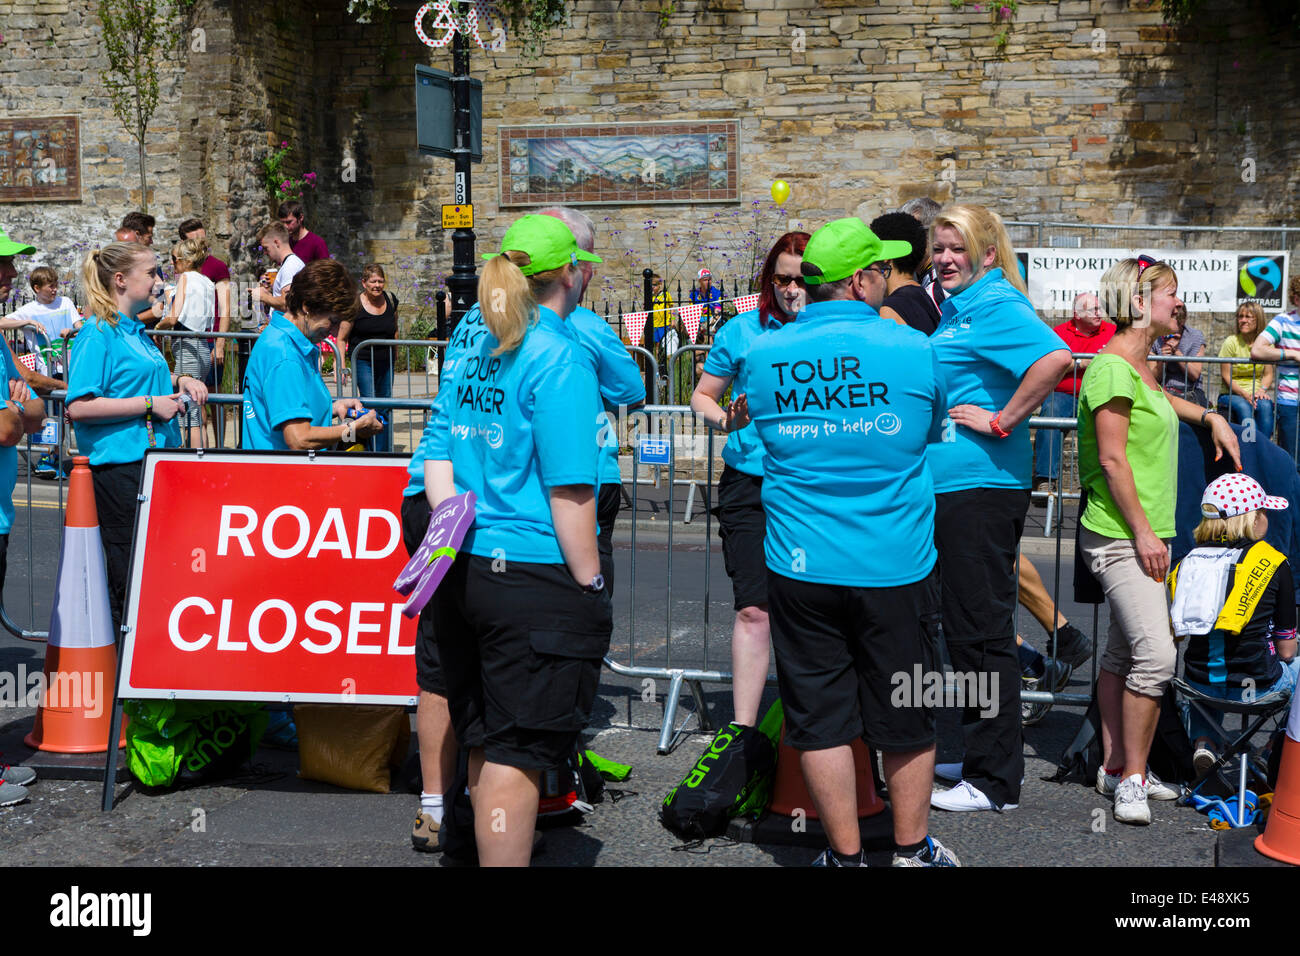 Tour Makers  in the centre of the West Yorkshire town of Holmfirth awaiting the arrival of the cyclists on stage - Stock Image